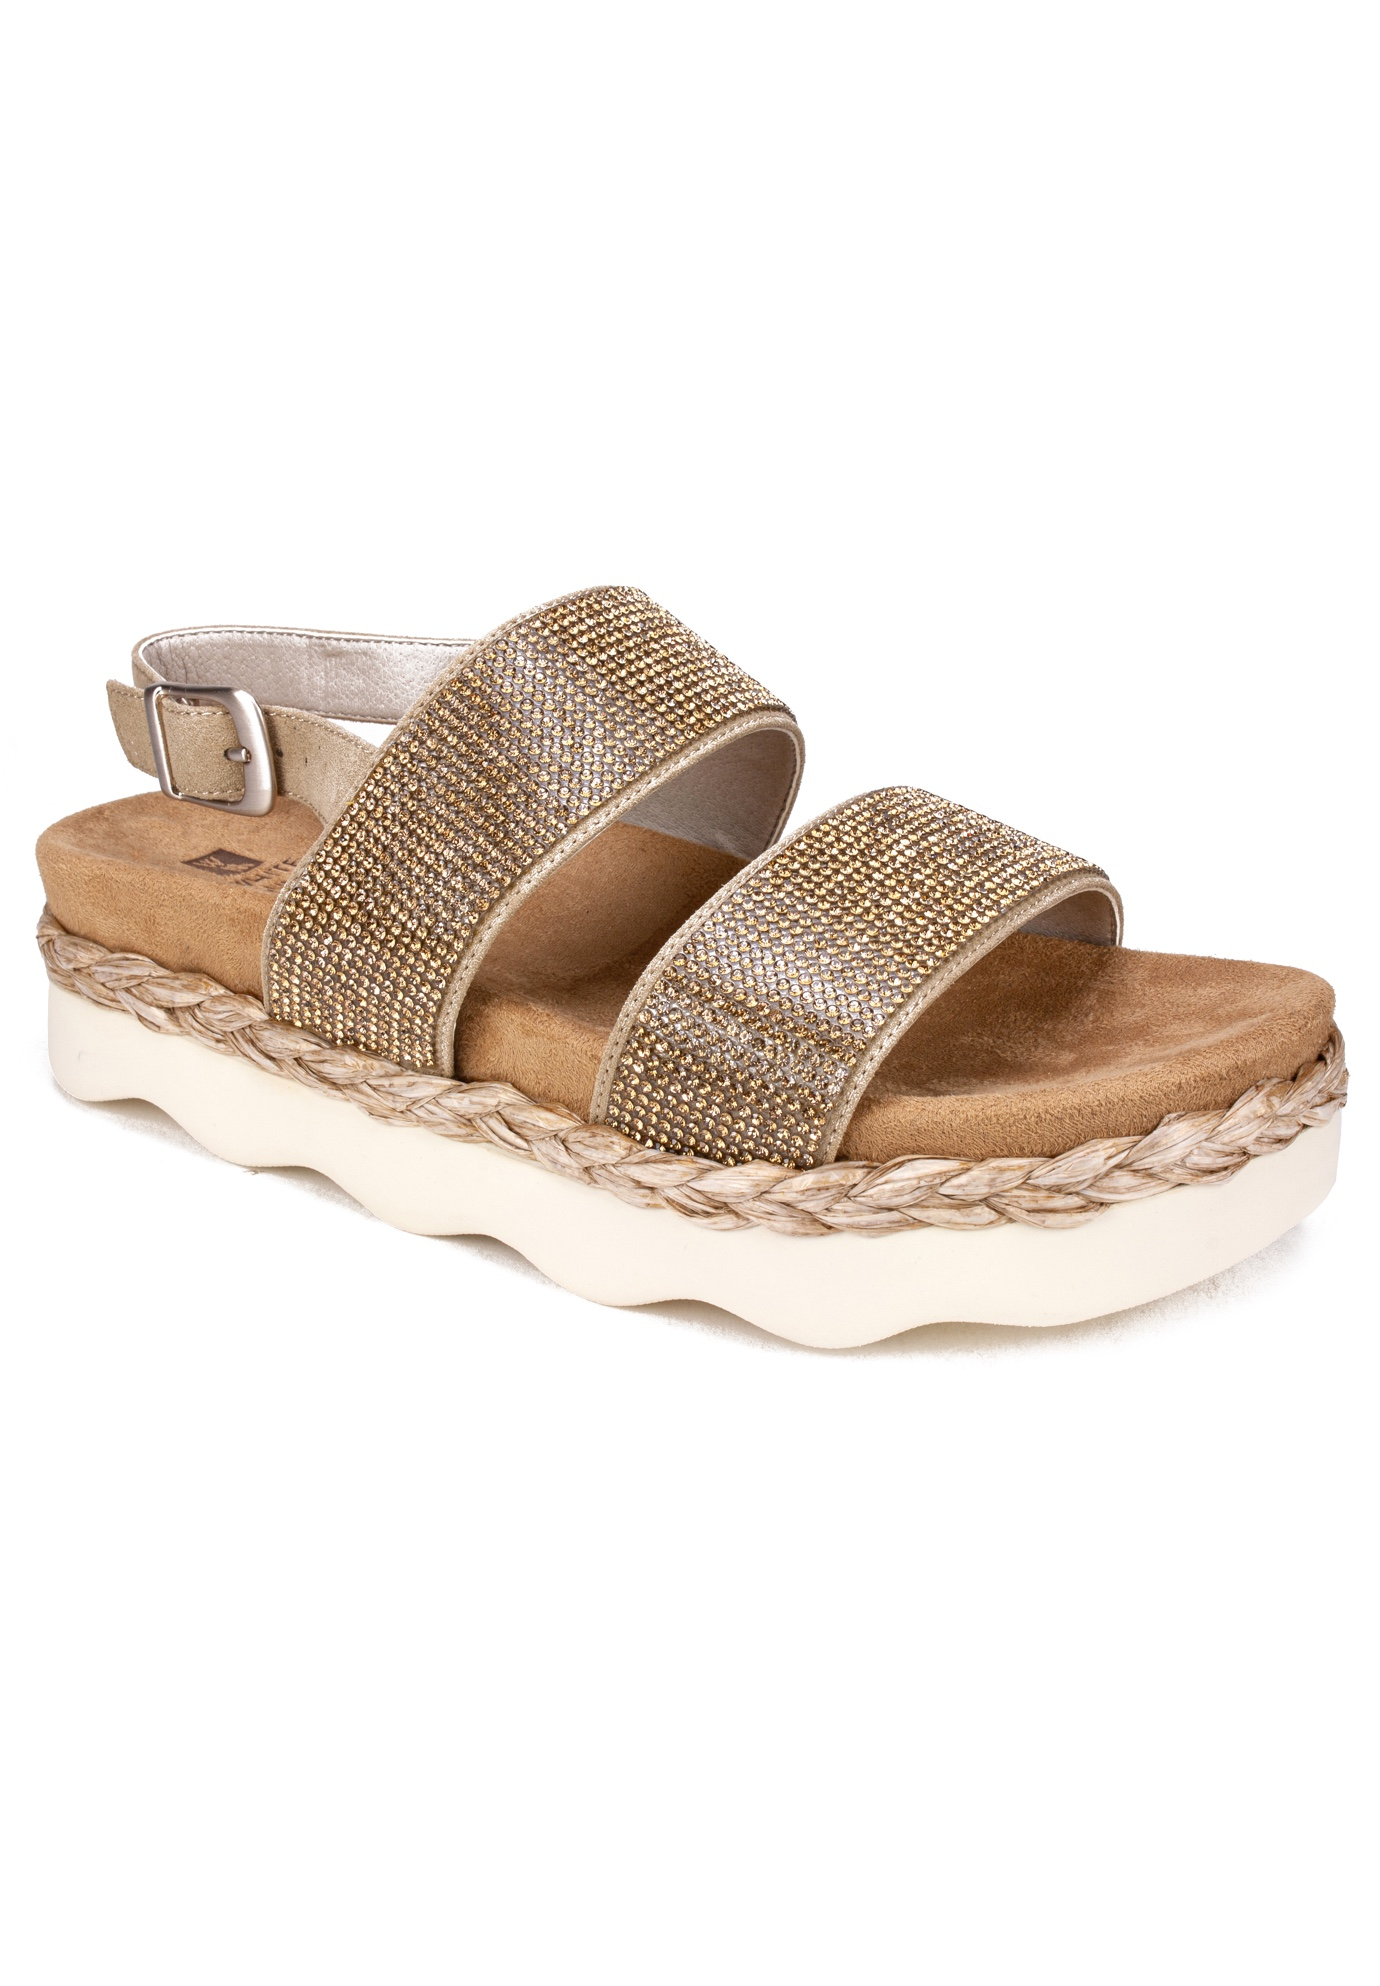 Austin Sandals by White Mountain,